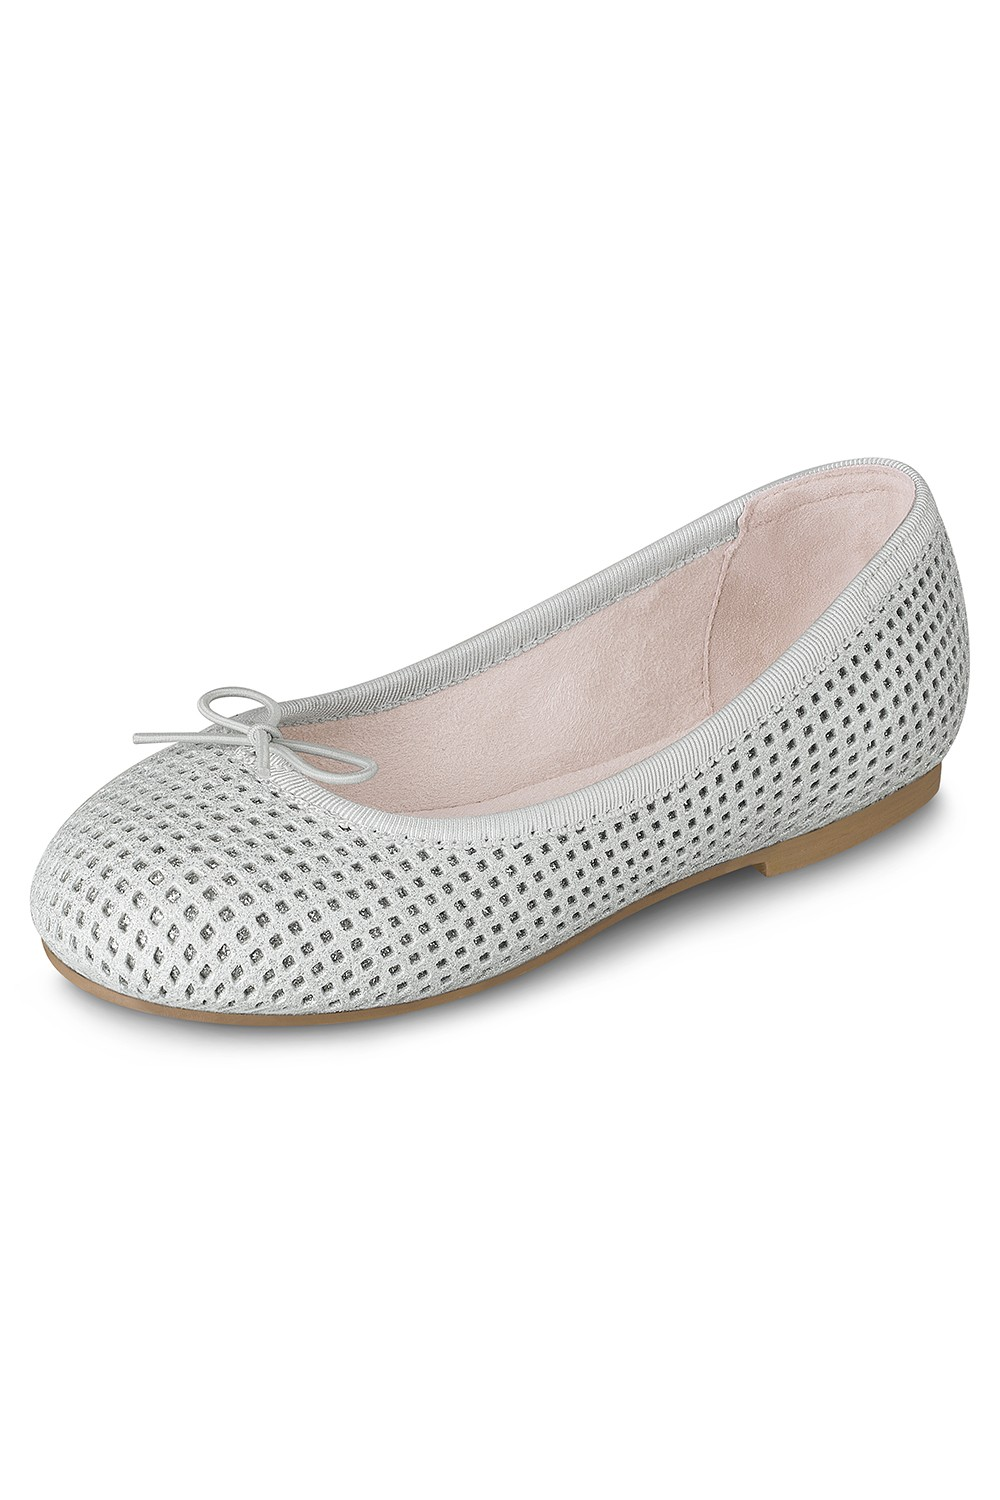 Girls Fashion Flats Girls Fashion Shoes